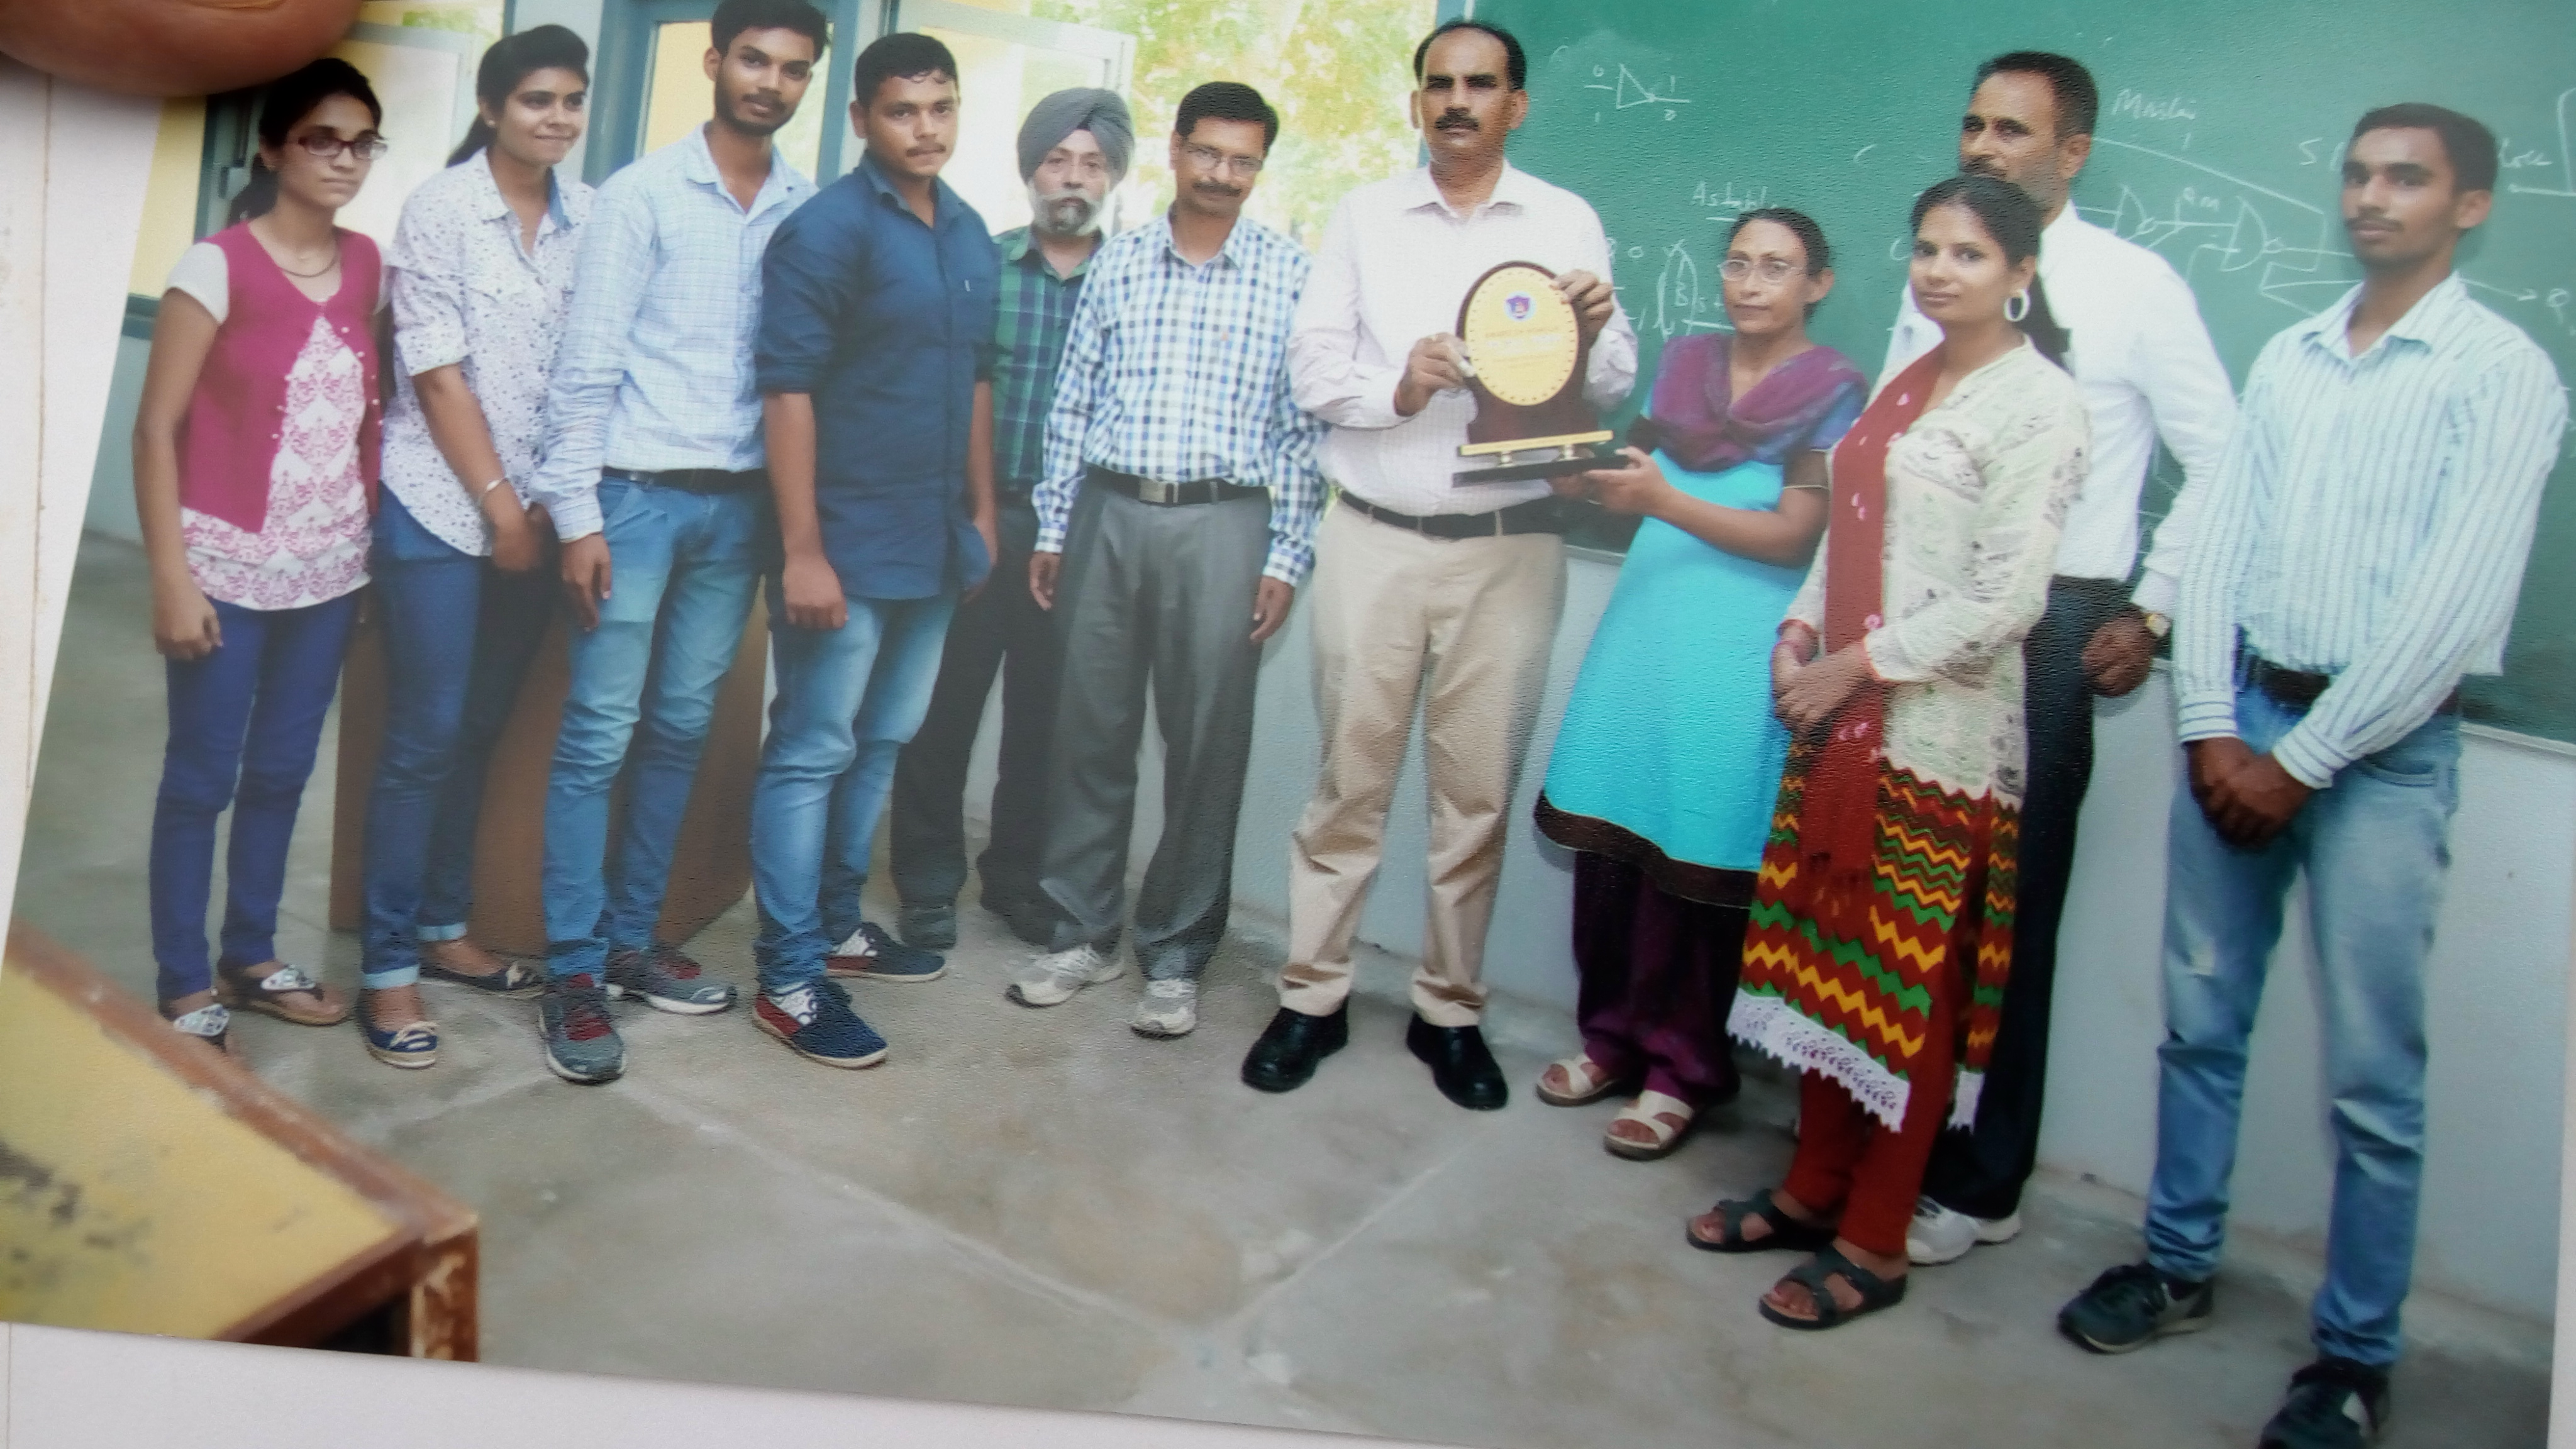 Memento presentation to Dr. M.S. Yadav by the members of Science and Environment Society